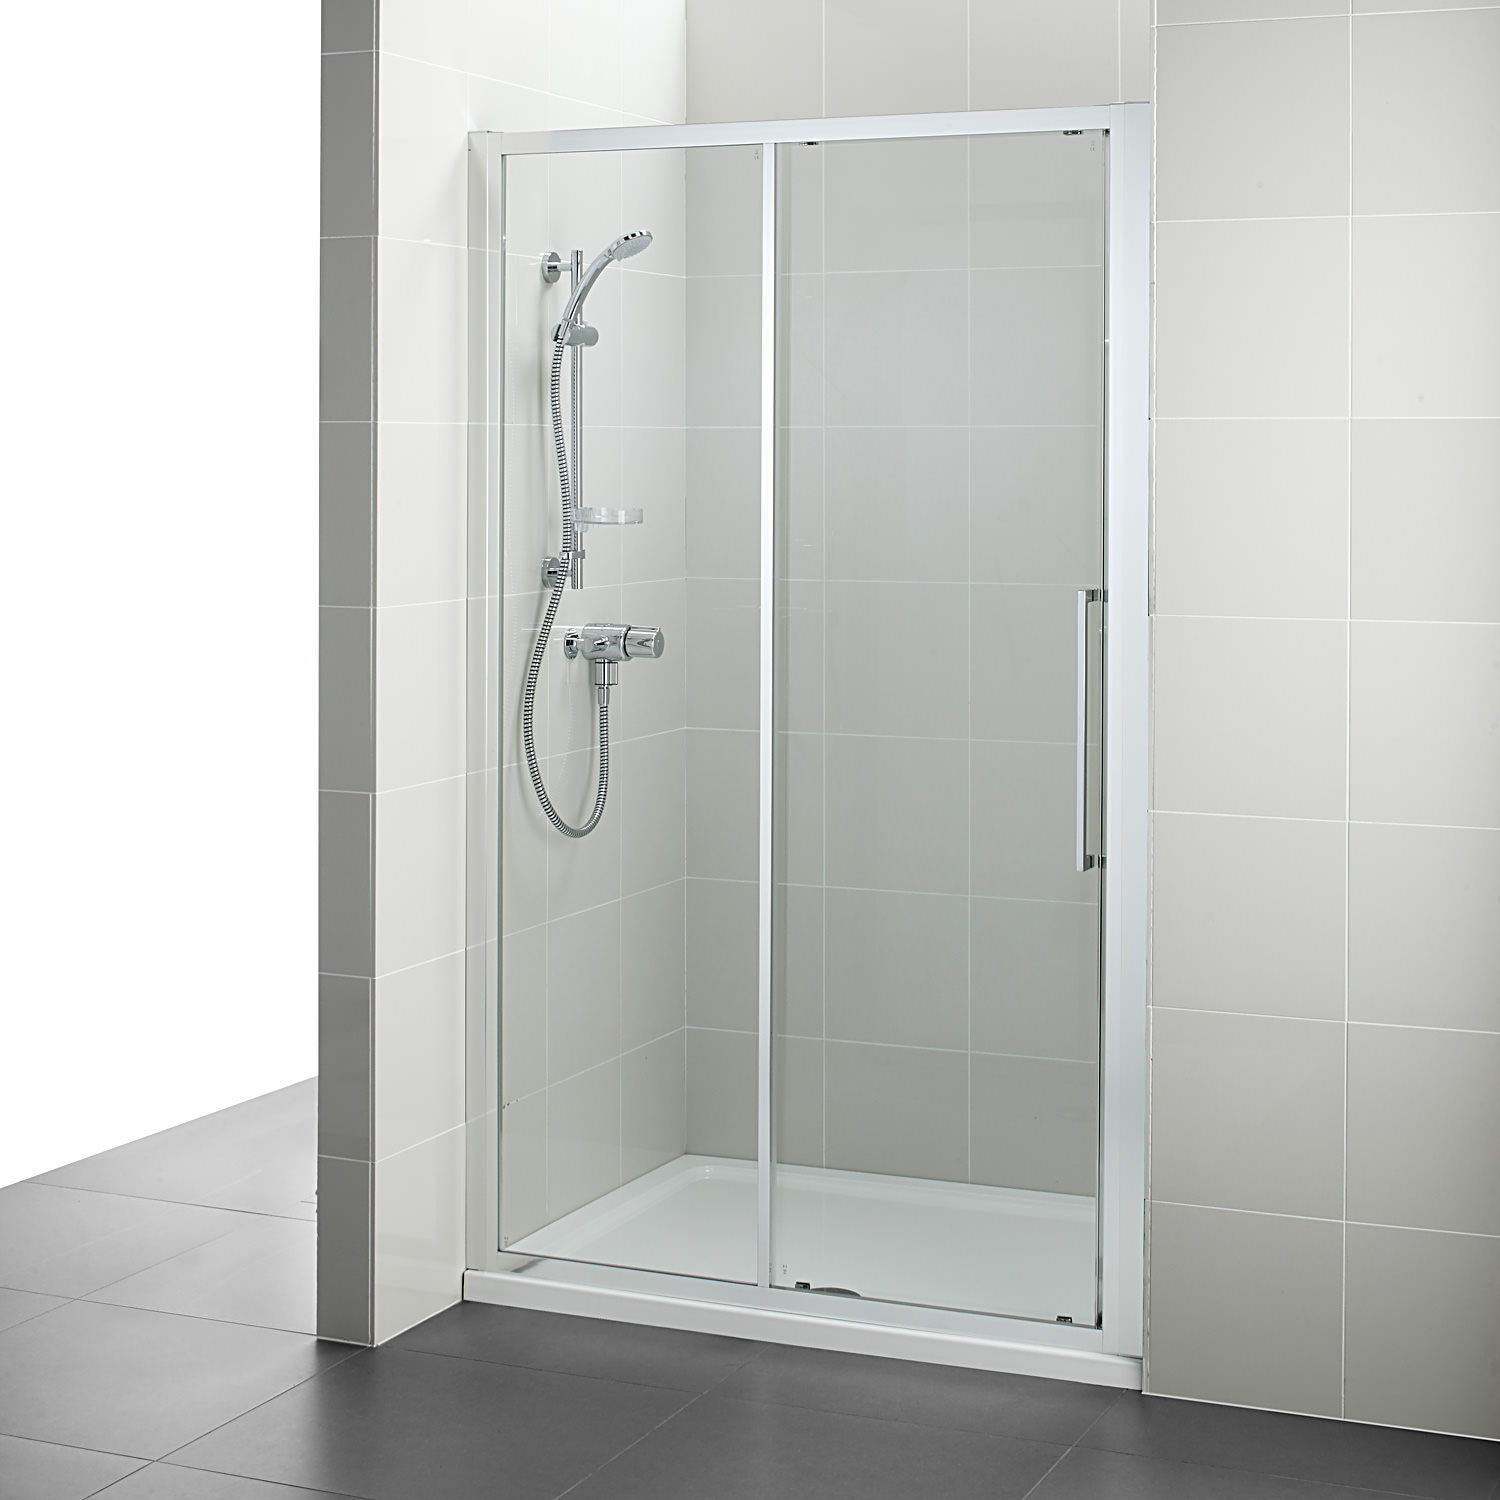 Ideal standard kubo 1200mm slider shower door for 1200mm shower door sliding